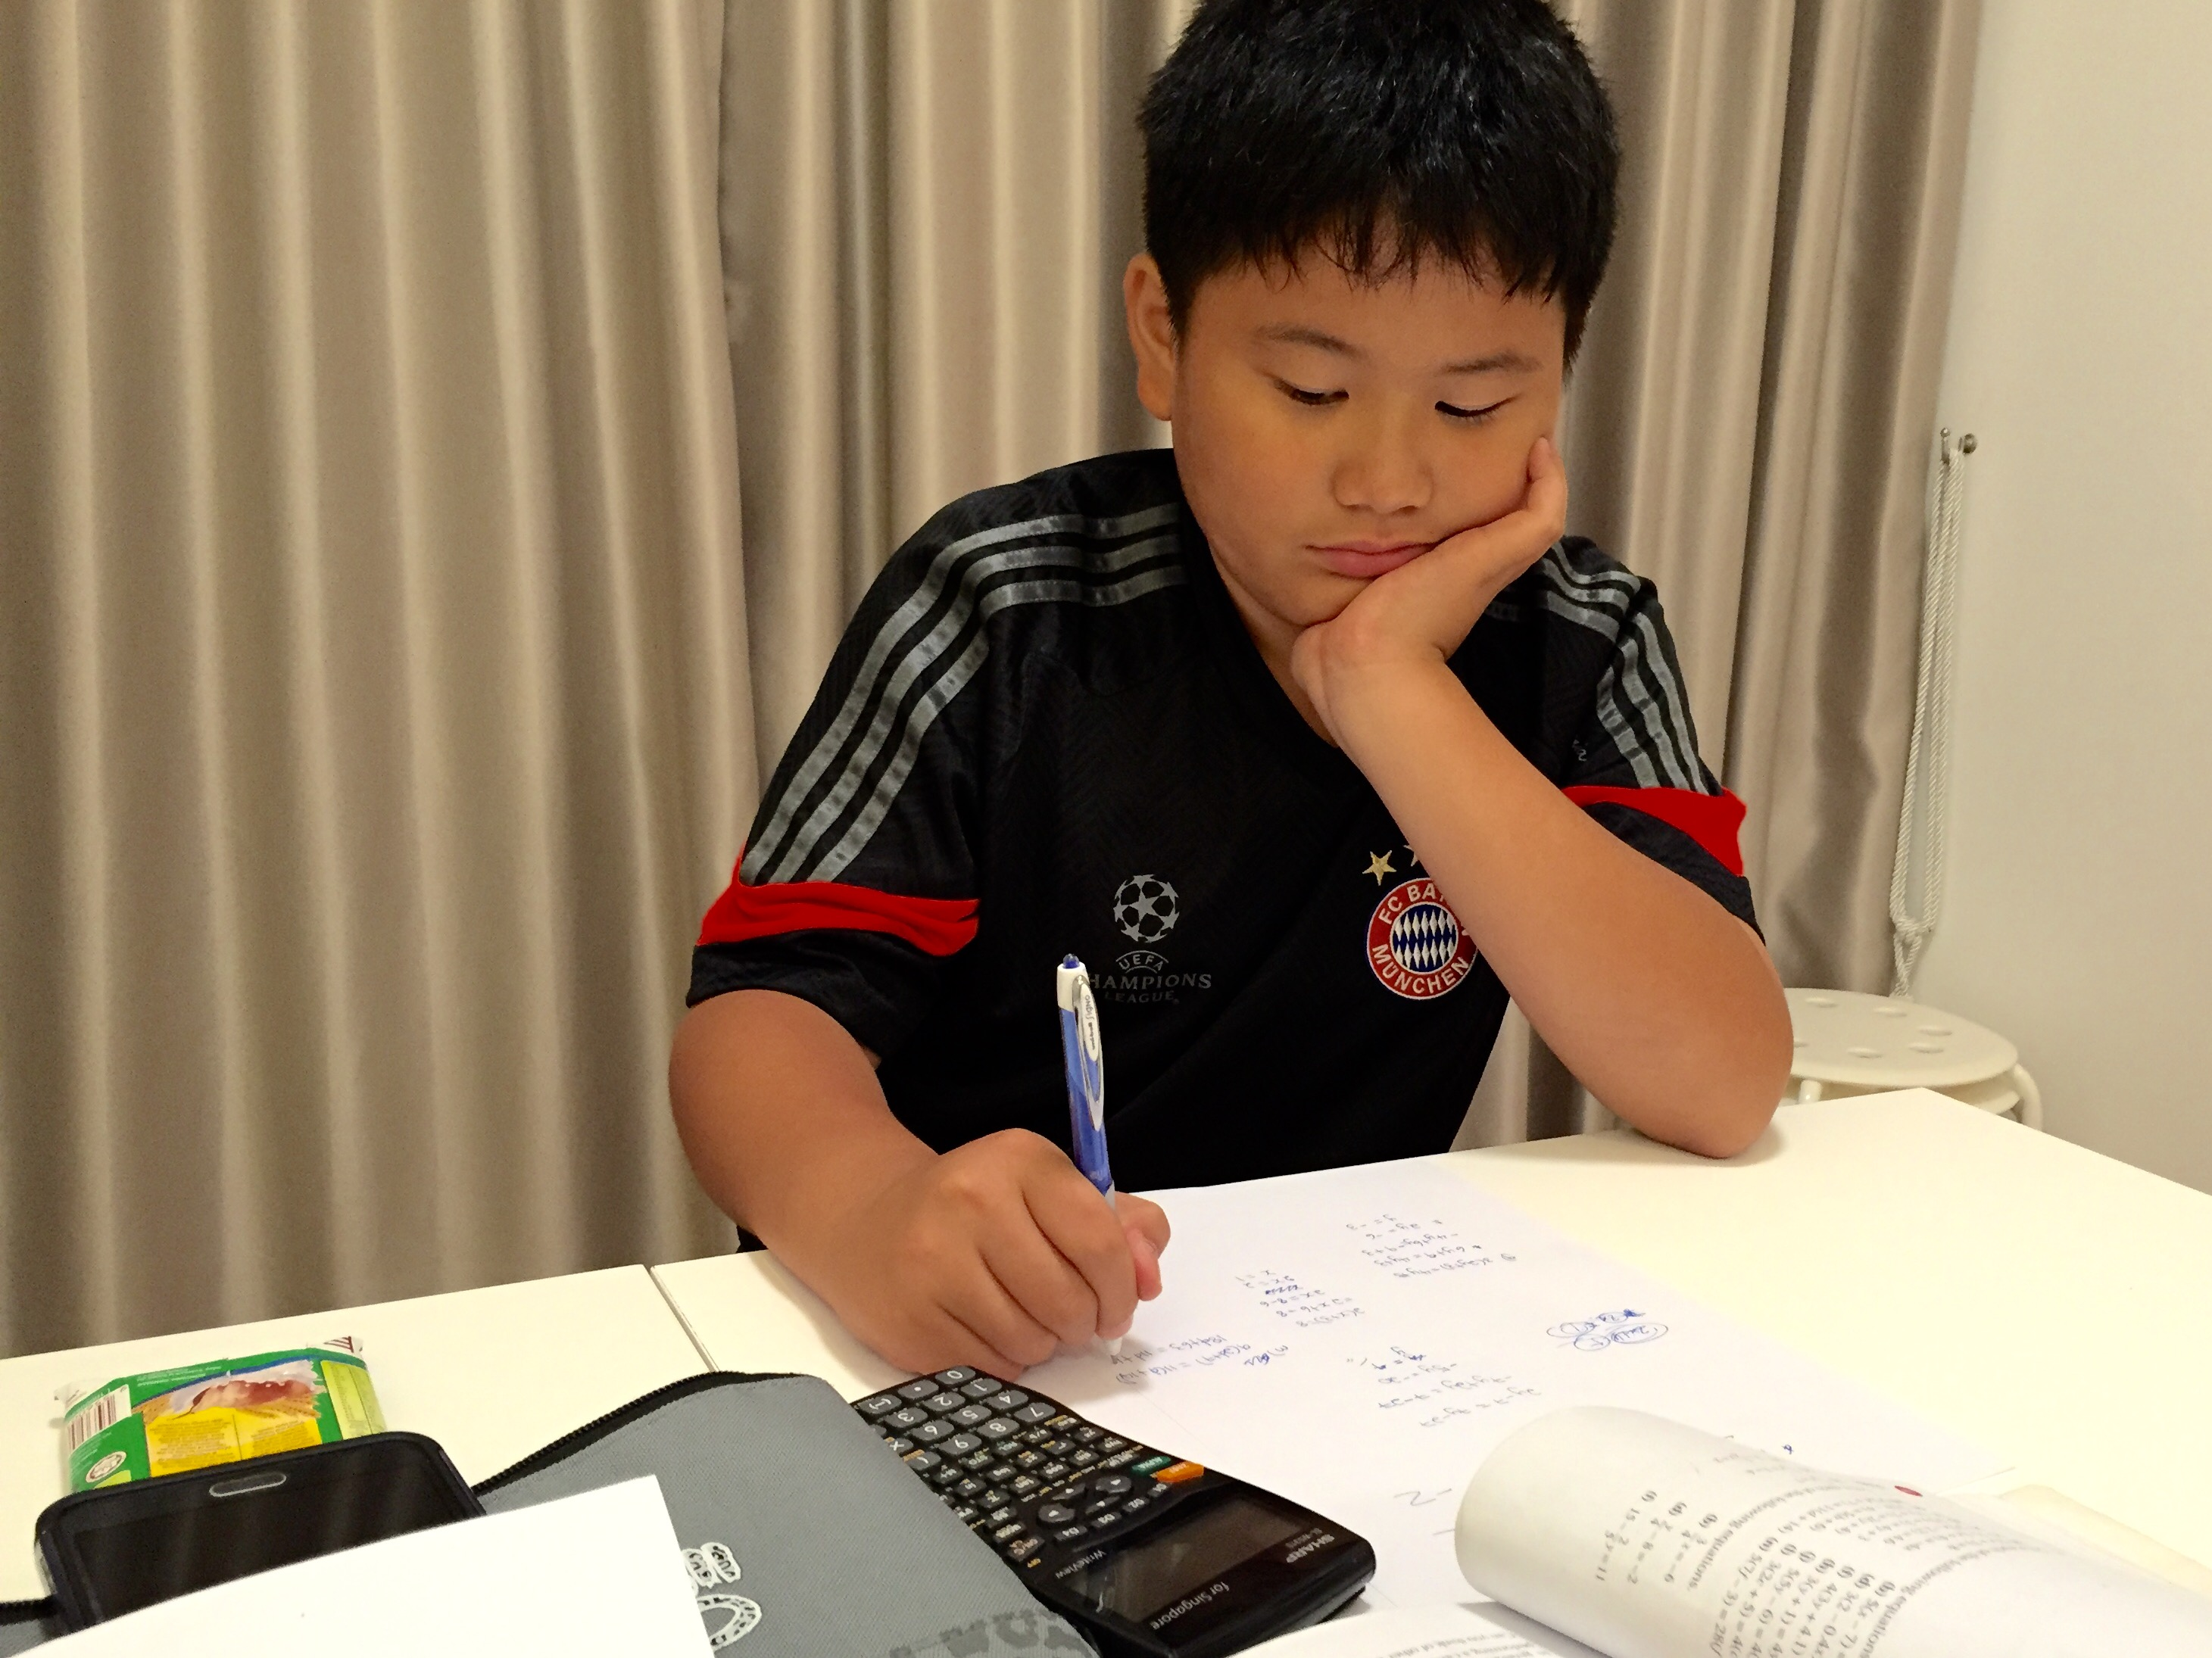 tuition assignments Register as a home tutor with us and receive notifications for tuition assignments singapore, it takes less than 5 minutes to register as a home tutor.